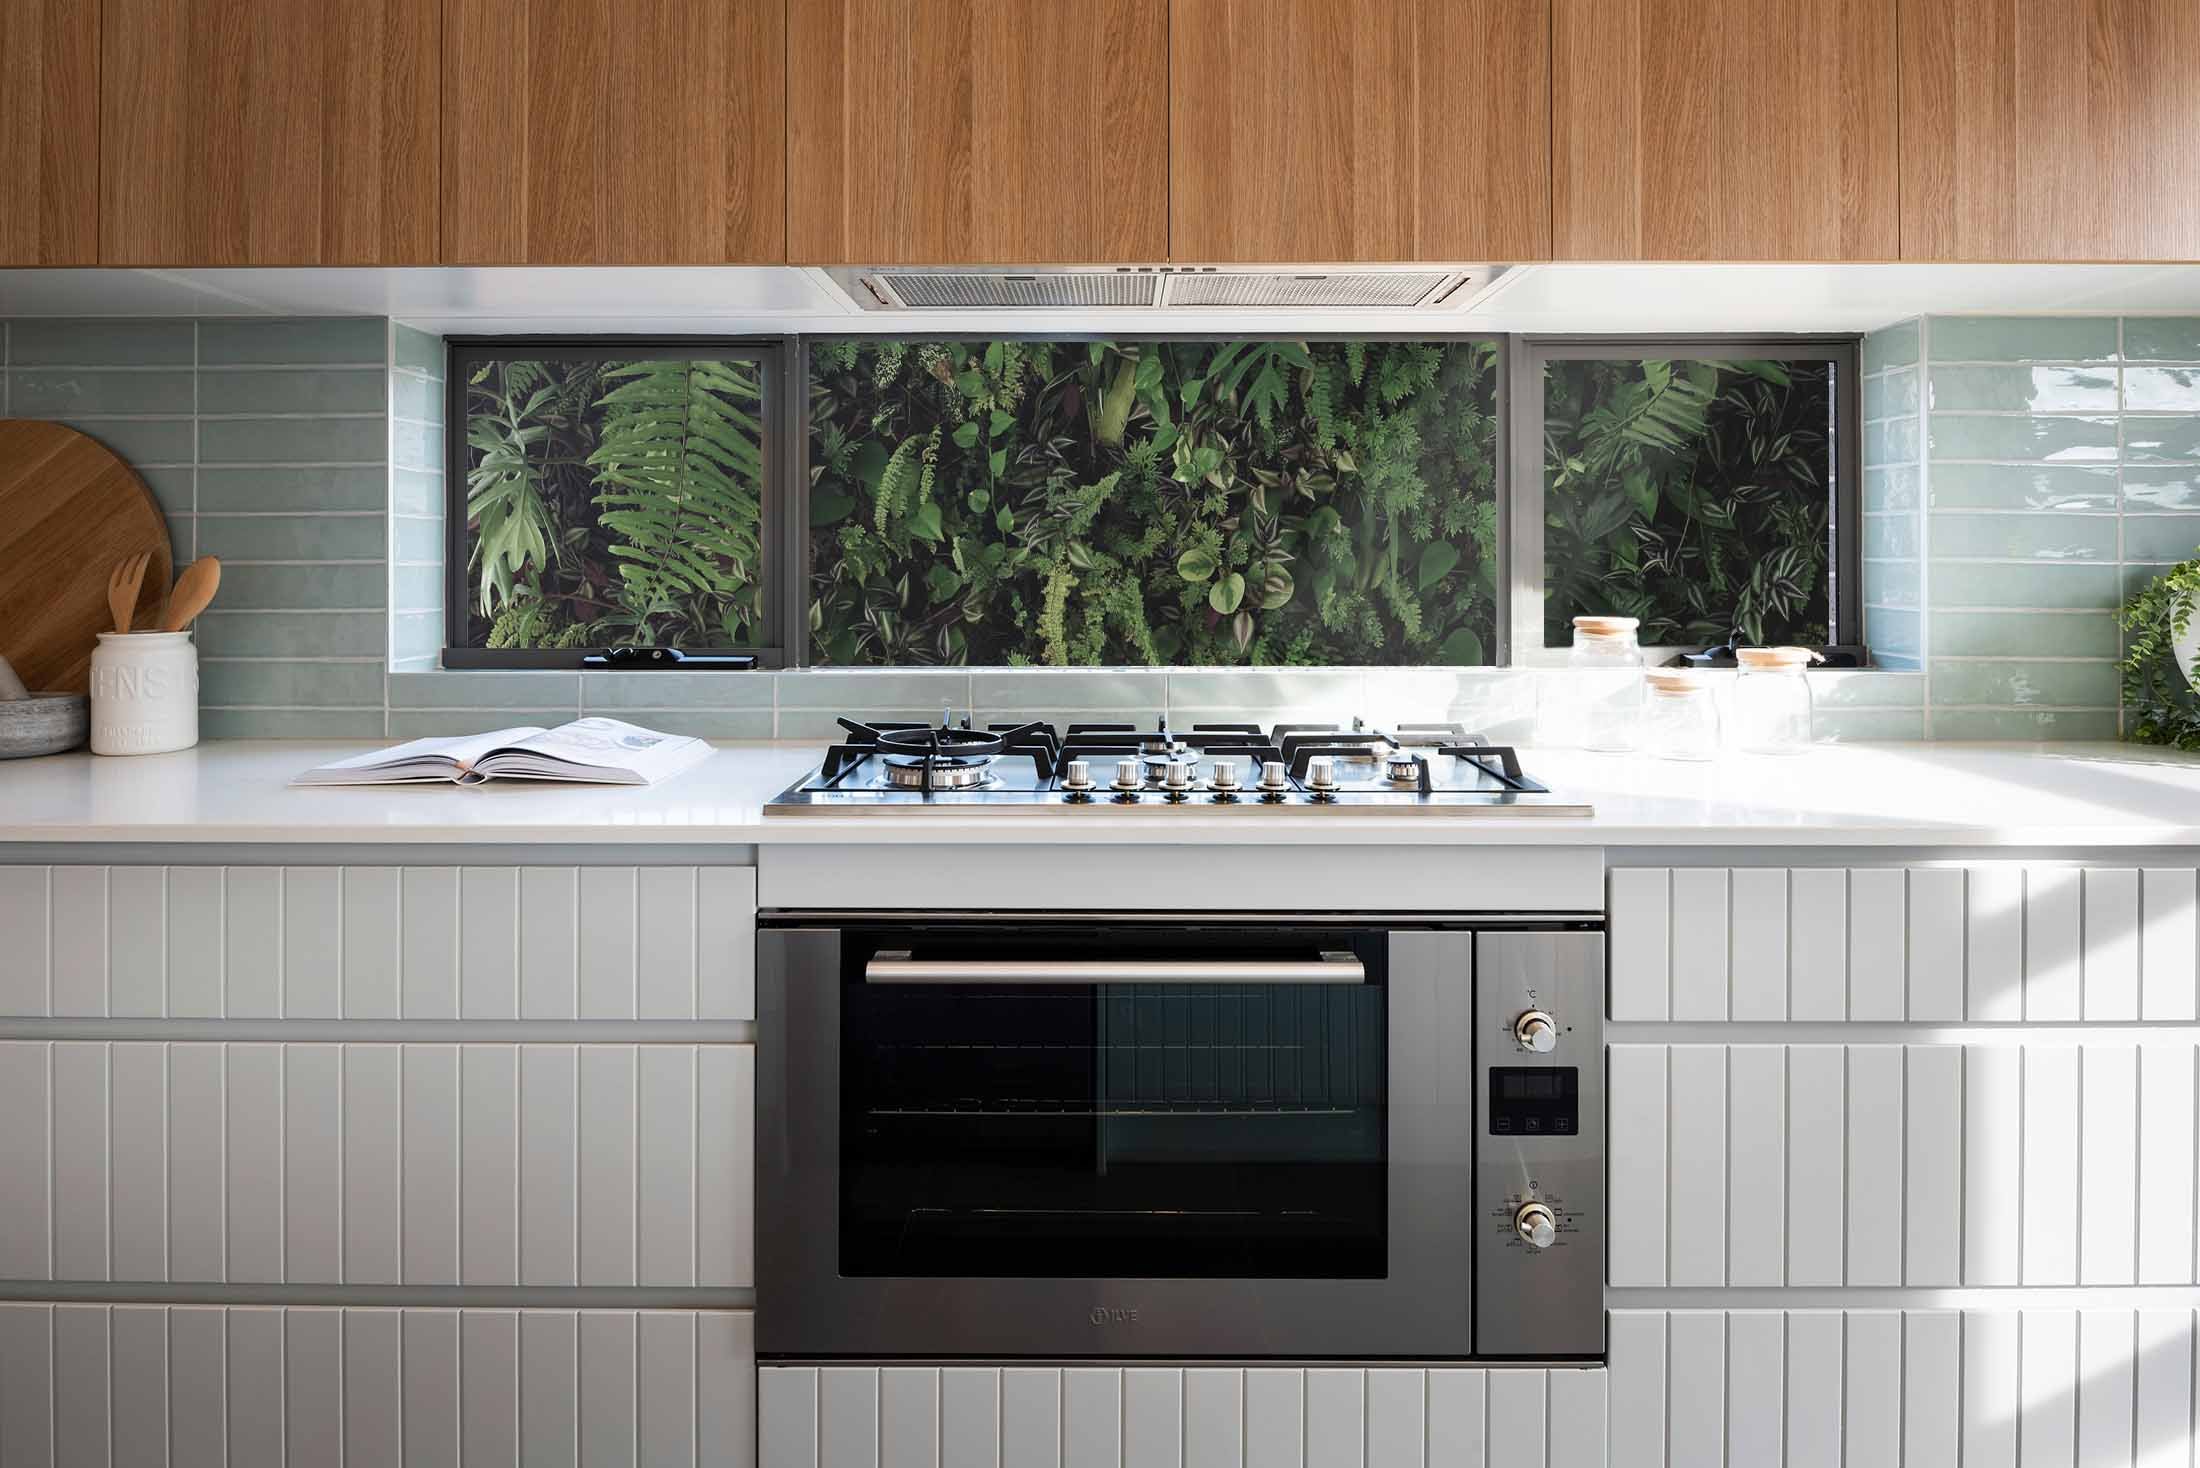 Oven and stove built into white kitchen counters